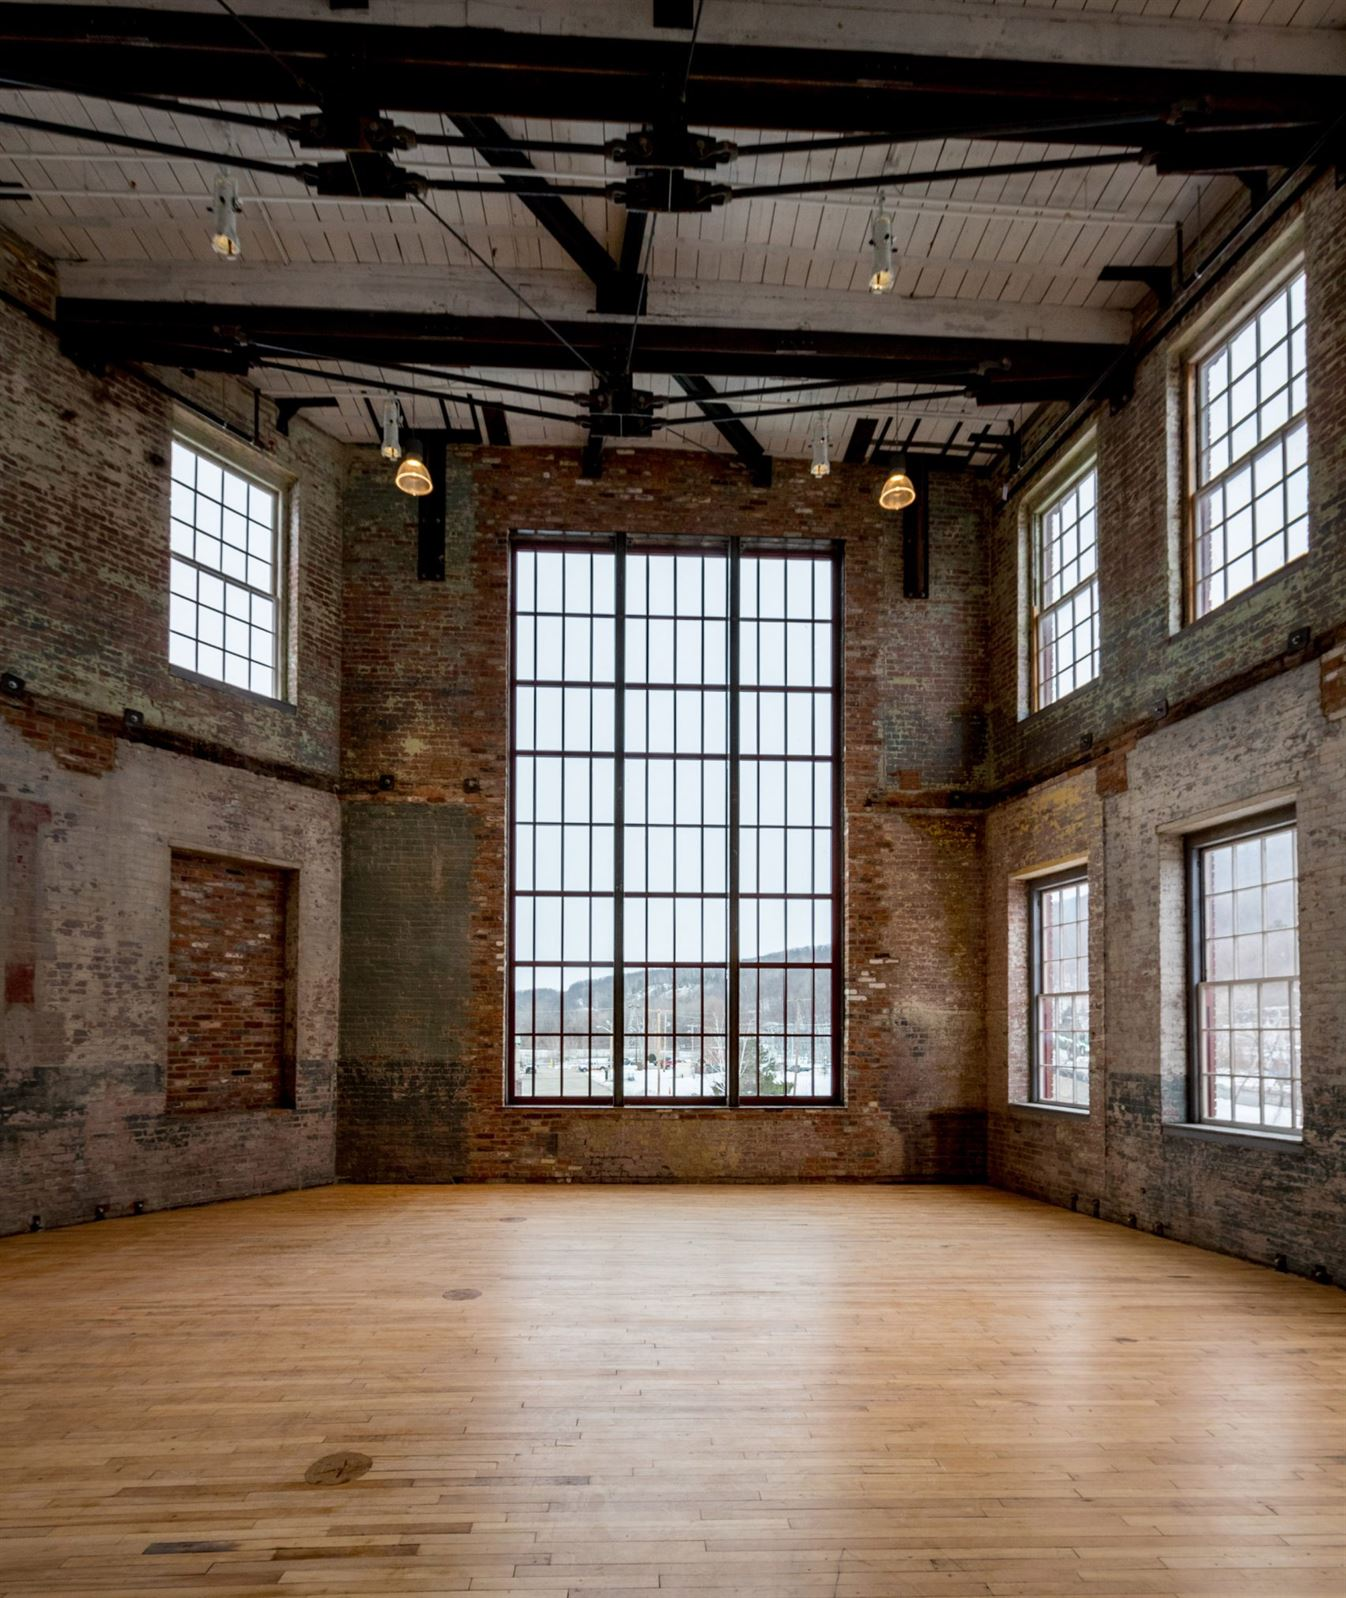 bruner-cott-mass-moca-massachusetts-museum-of-contemporary-art-museum-textile-factory-berkshires-expansion-renovation_dezeen_7-1704